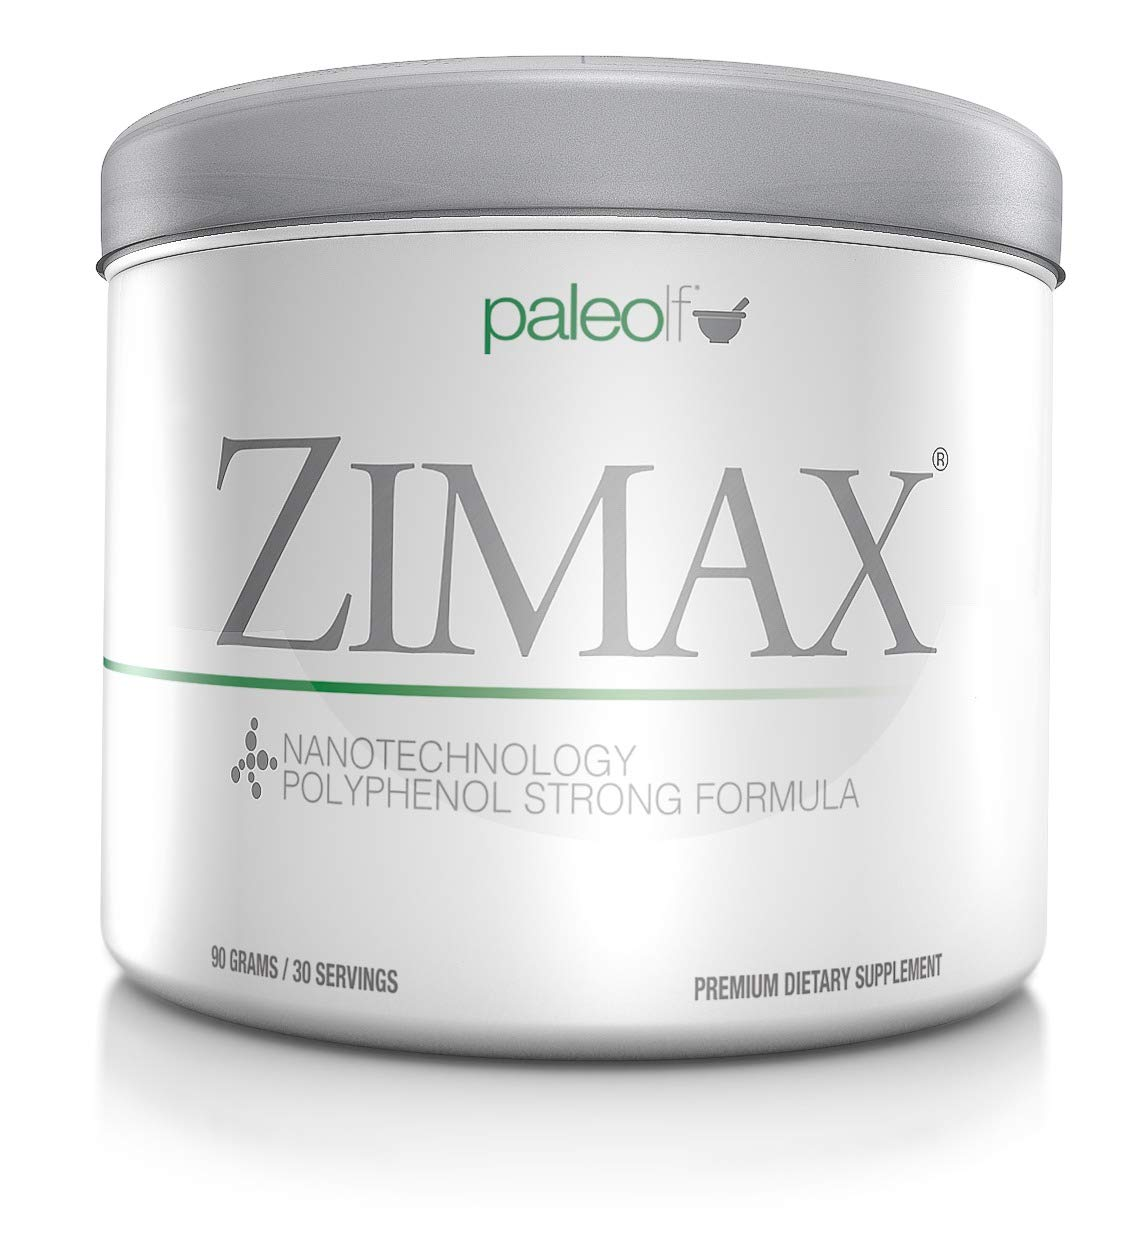 Zimax Super Antioxidant 100% Natural High Absorption Curcumin, Rosemary Extract, Grape Seed Extract, Olive Leaf Extract ORAC 3,451,770 (Canister) by Paleolf (Image #1)